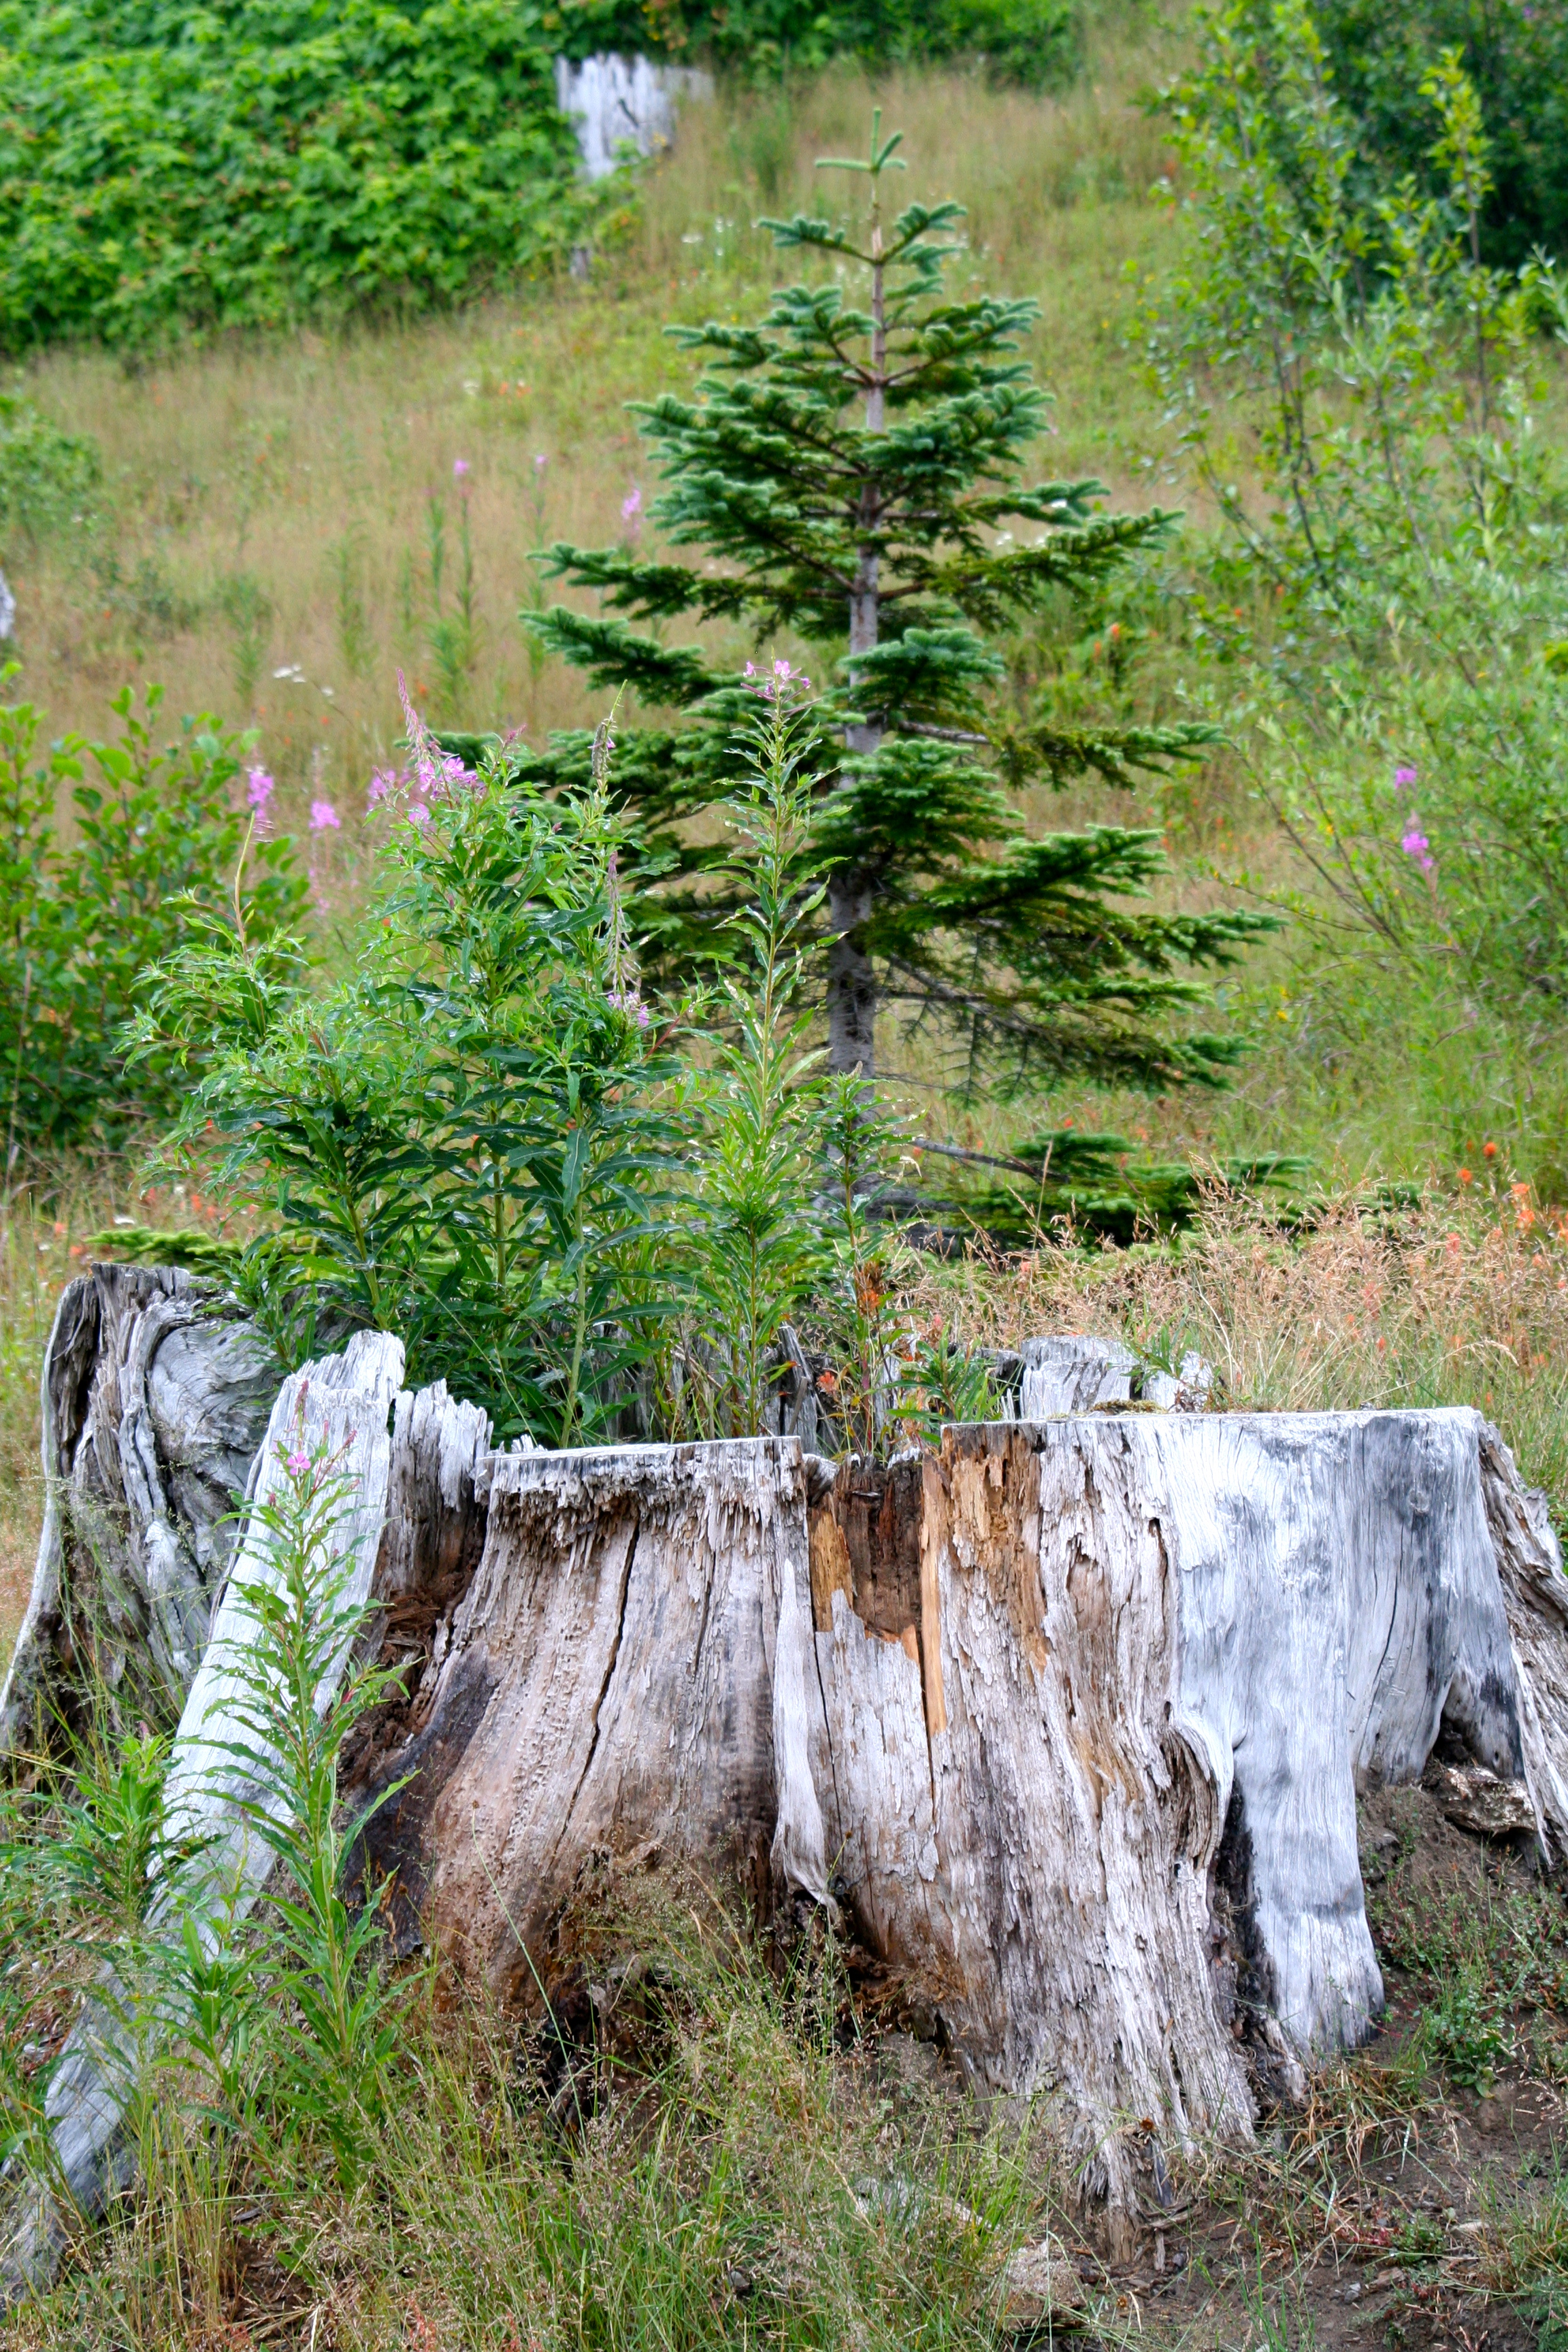 I felt the young tree growing out of a stump at Mt. St. Helens provided the best example of nature on the rebound. (Photo by Peggy Mekemson.)